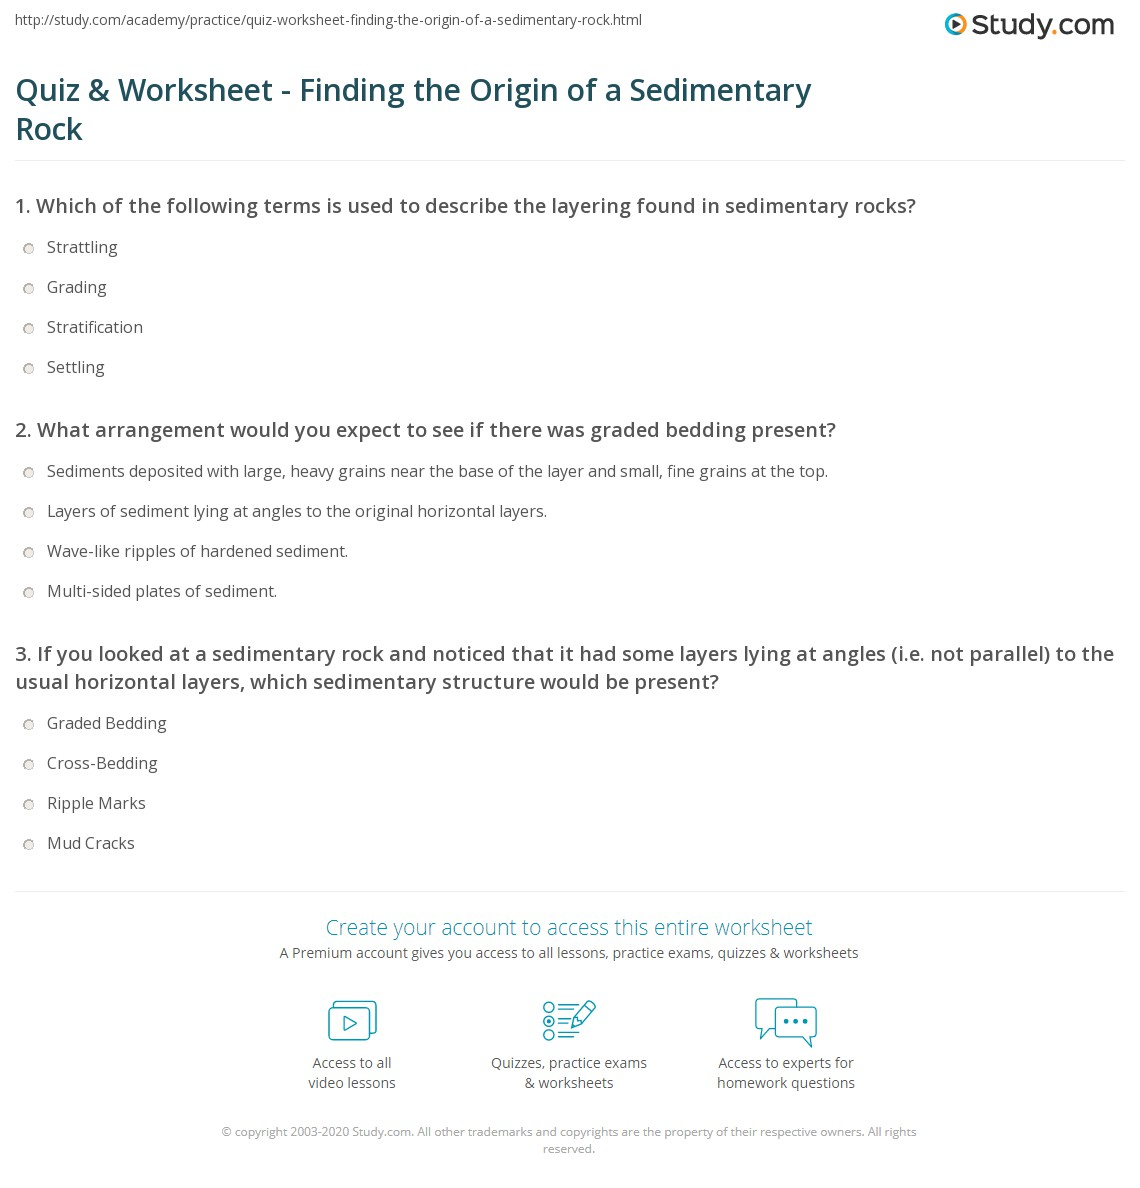 Sedimentary Rock Worksheet education, alphabet worksheets, worksheets, and grade worksheets Sedimentary Rocks Worksheets 1410 x 1140